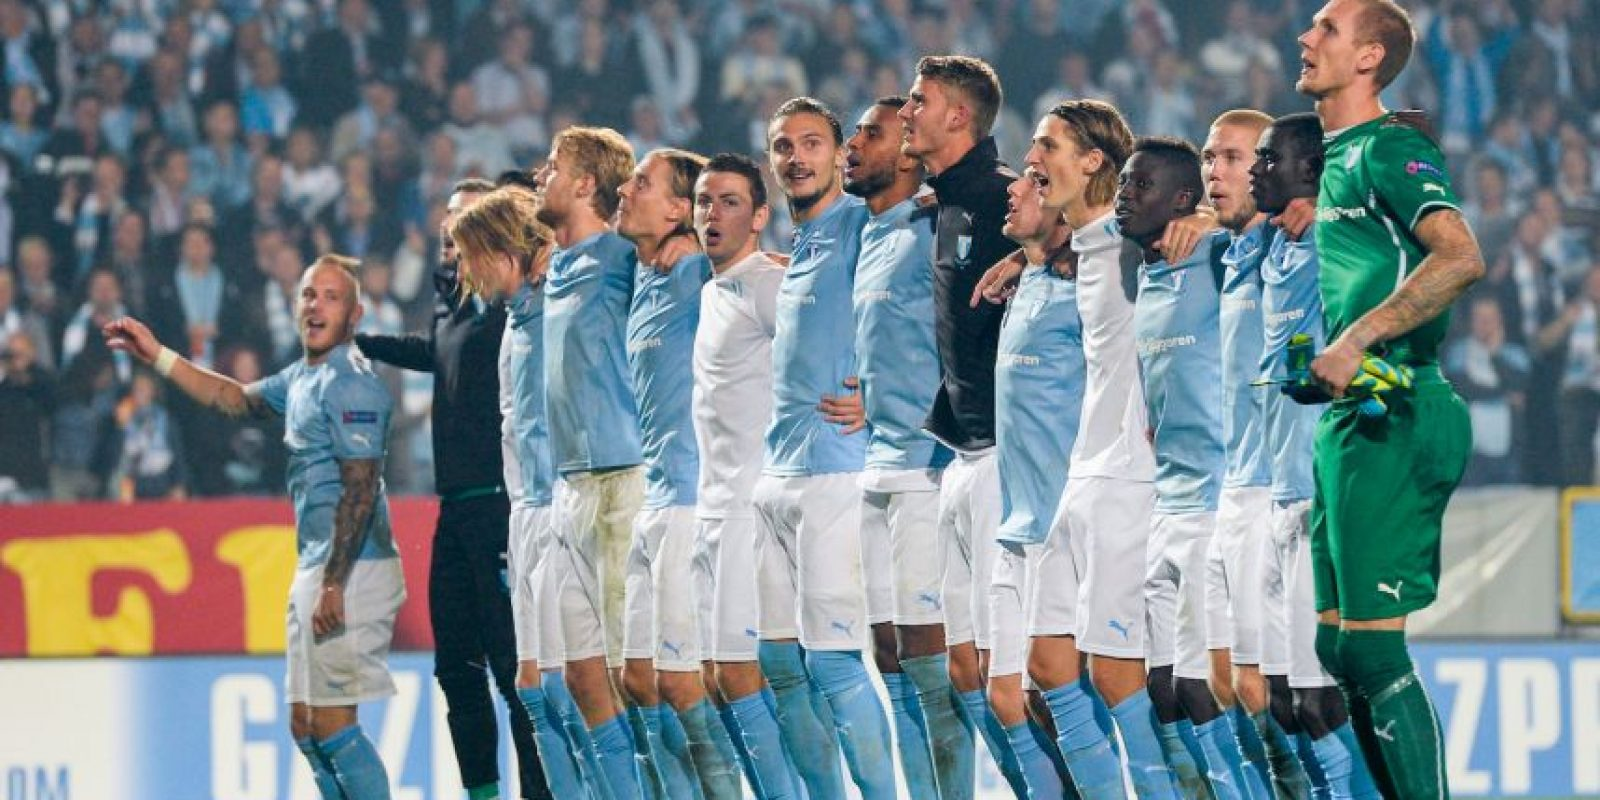 Malmö tiene la oportunidad de colarse a la Europa League Foto: Getty Images